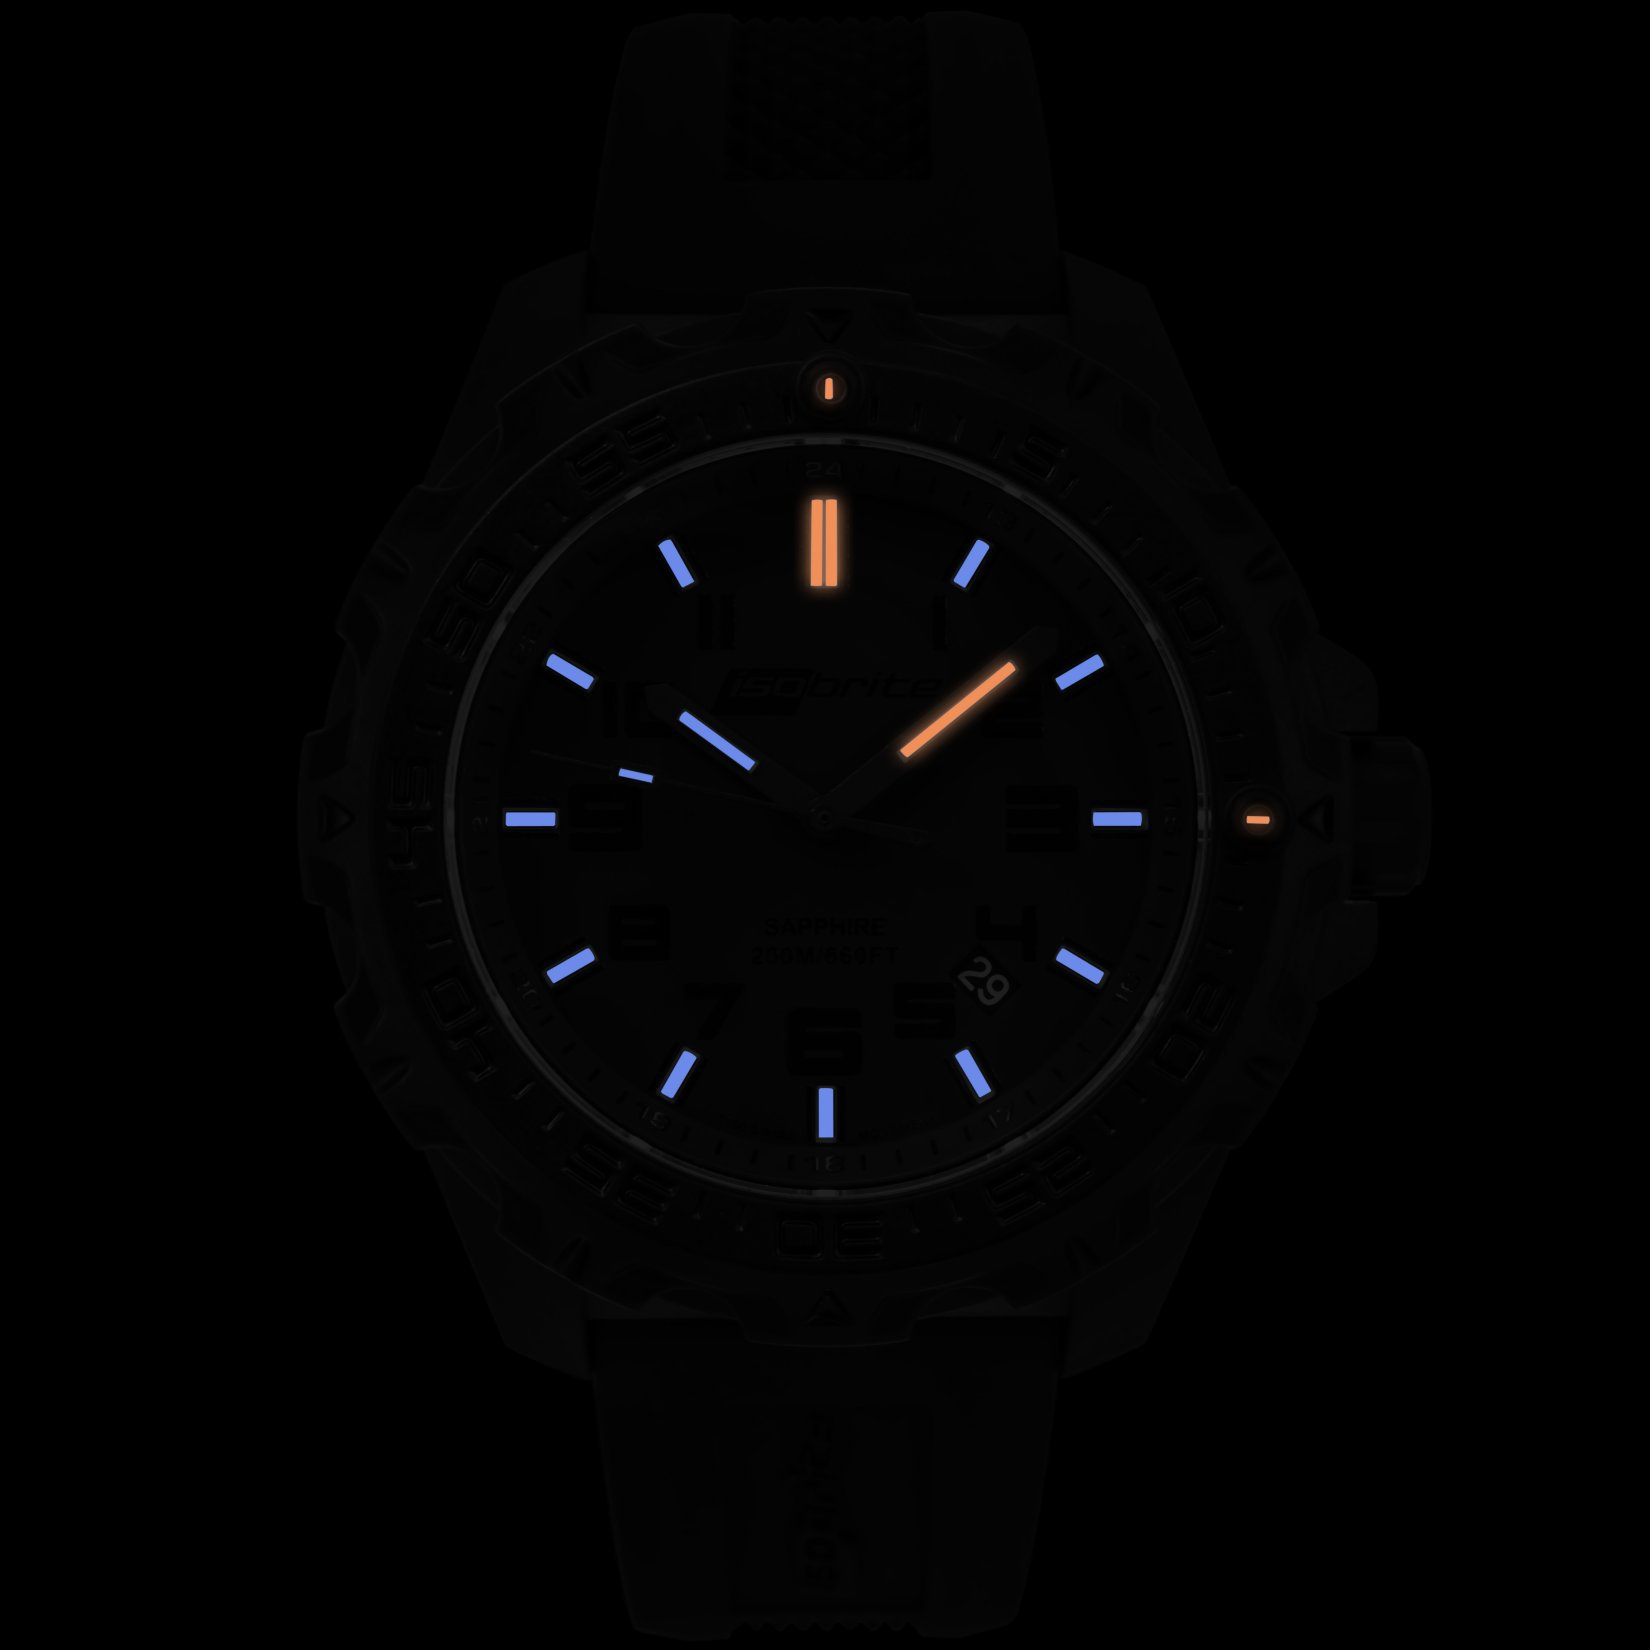 ArmourLite IsoBrite Eclipse T100 Tritium Illuminated Lightweight Polycarbon Watch 3 small All New Isobrite Eclipse T100 Tritium Illuminated Lightweight Polycarbon Tactical Watch Expands ArmourLites Commitment to Making the Brightest and Most Durable Watches